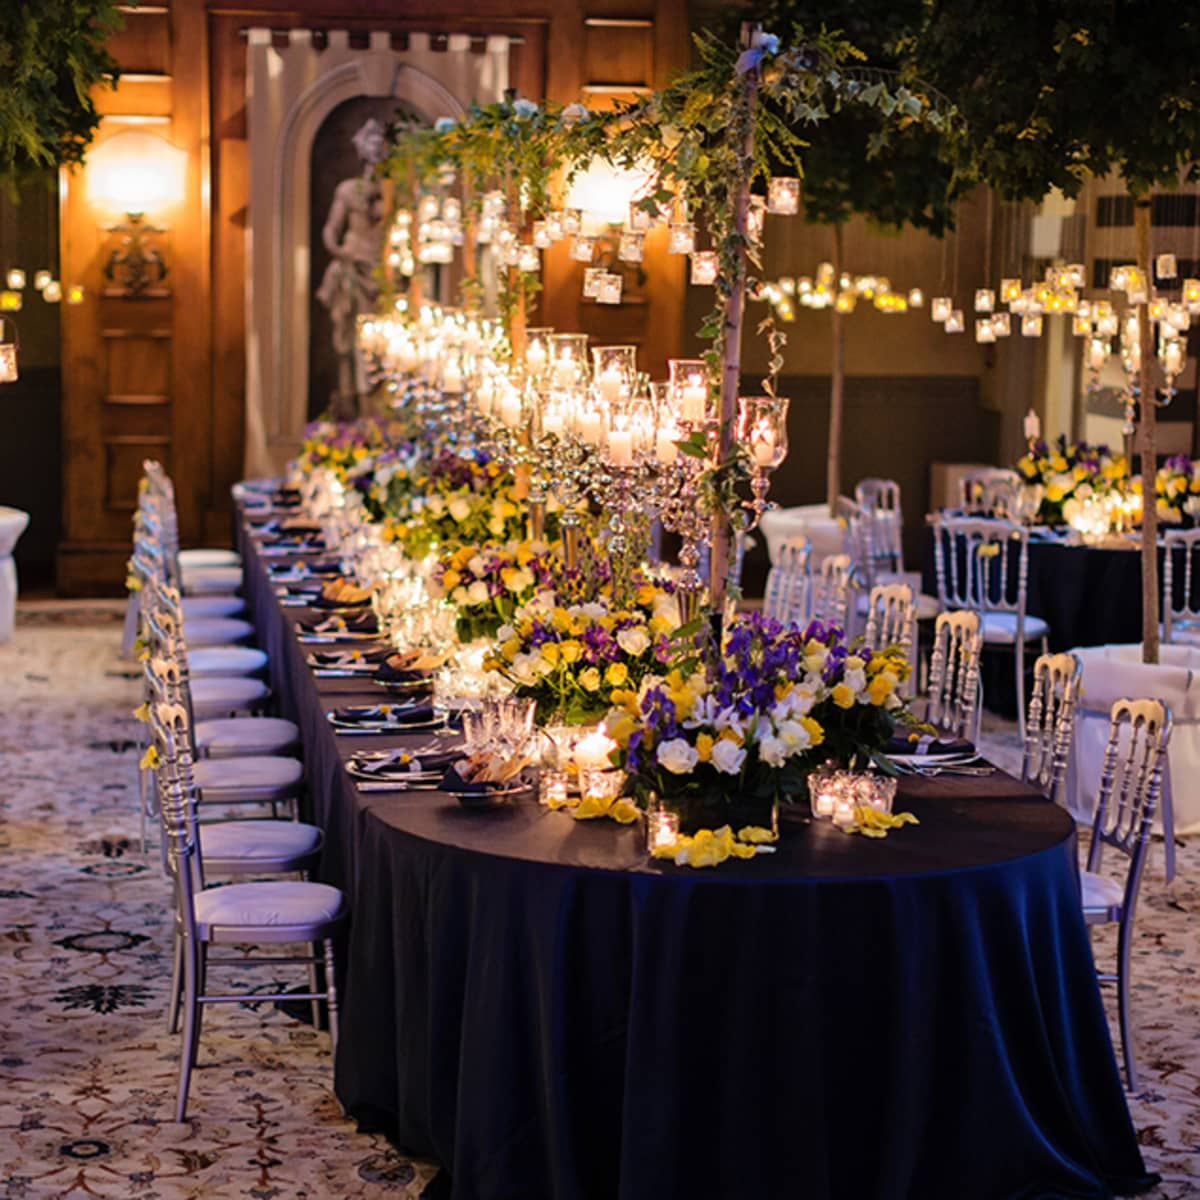 Destination wedding in italy four seasons hotel florence flowers and more than 2000 candles decorate the reception space and its immaculate tables junglespirit Gallery